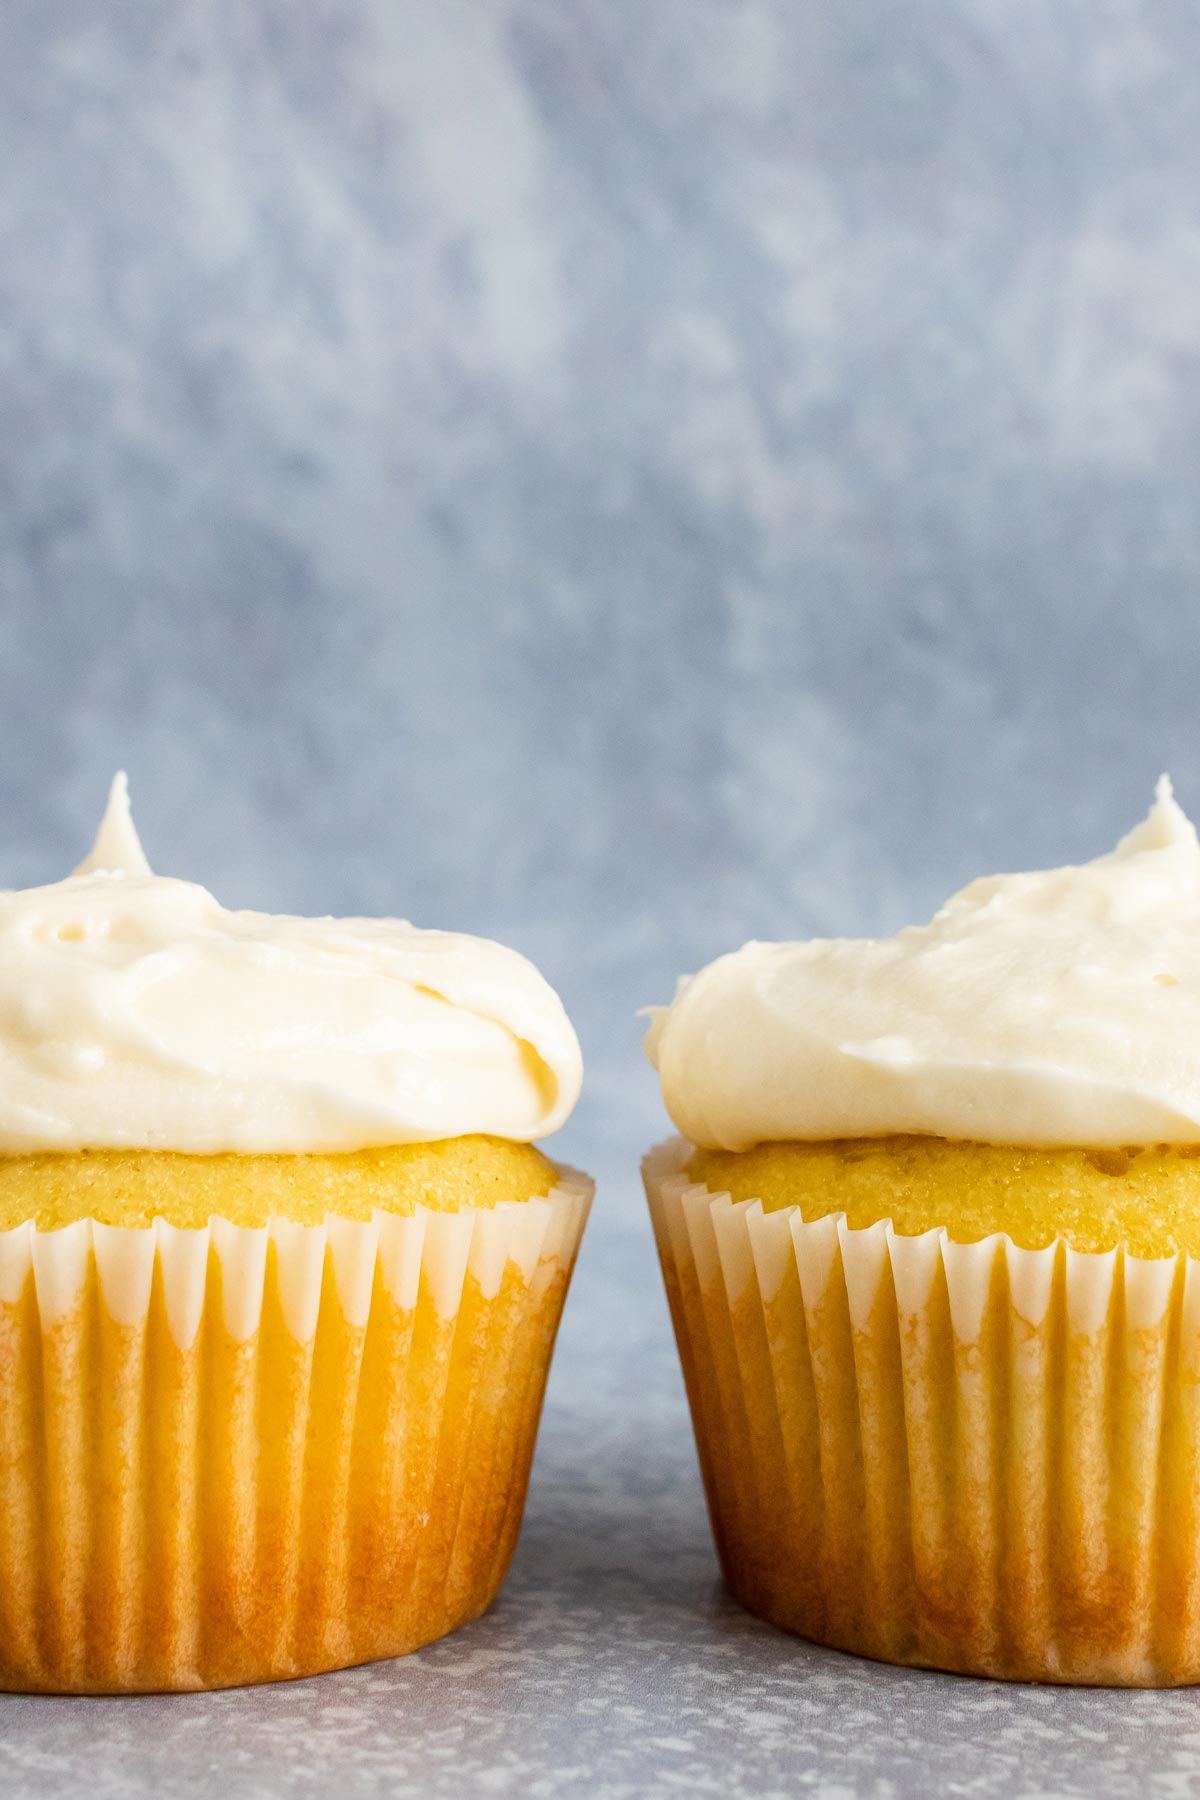 Two vanilla cupcakes side by side with vanilla frosting.